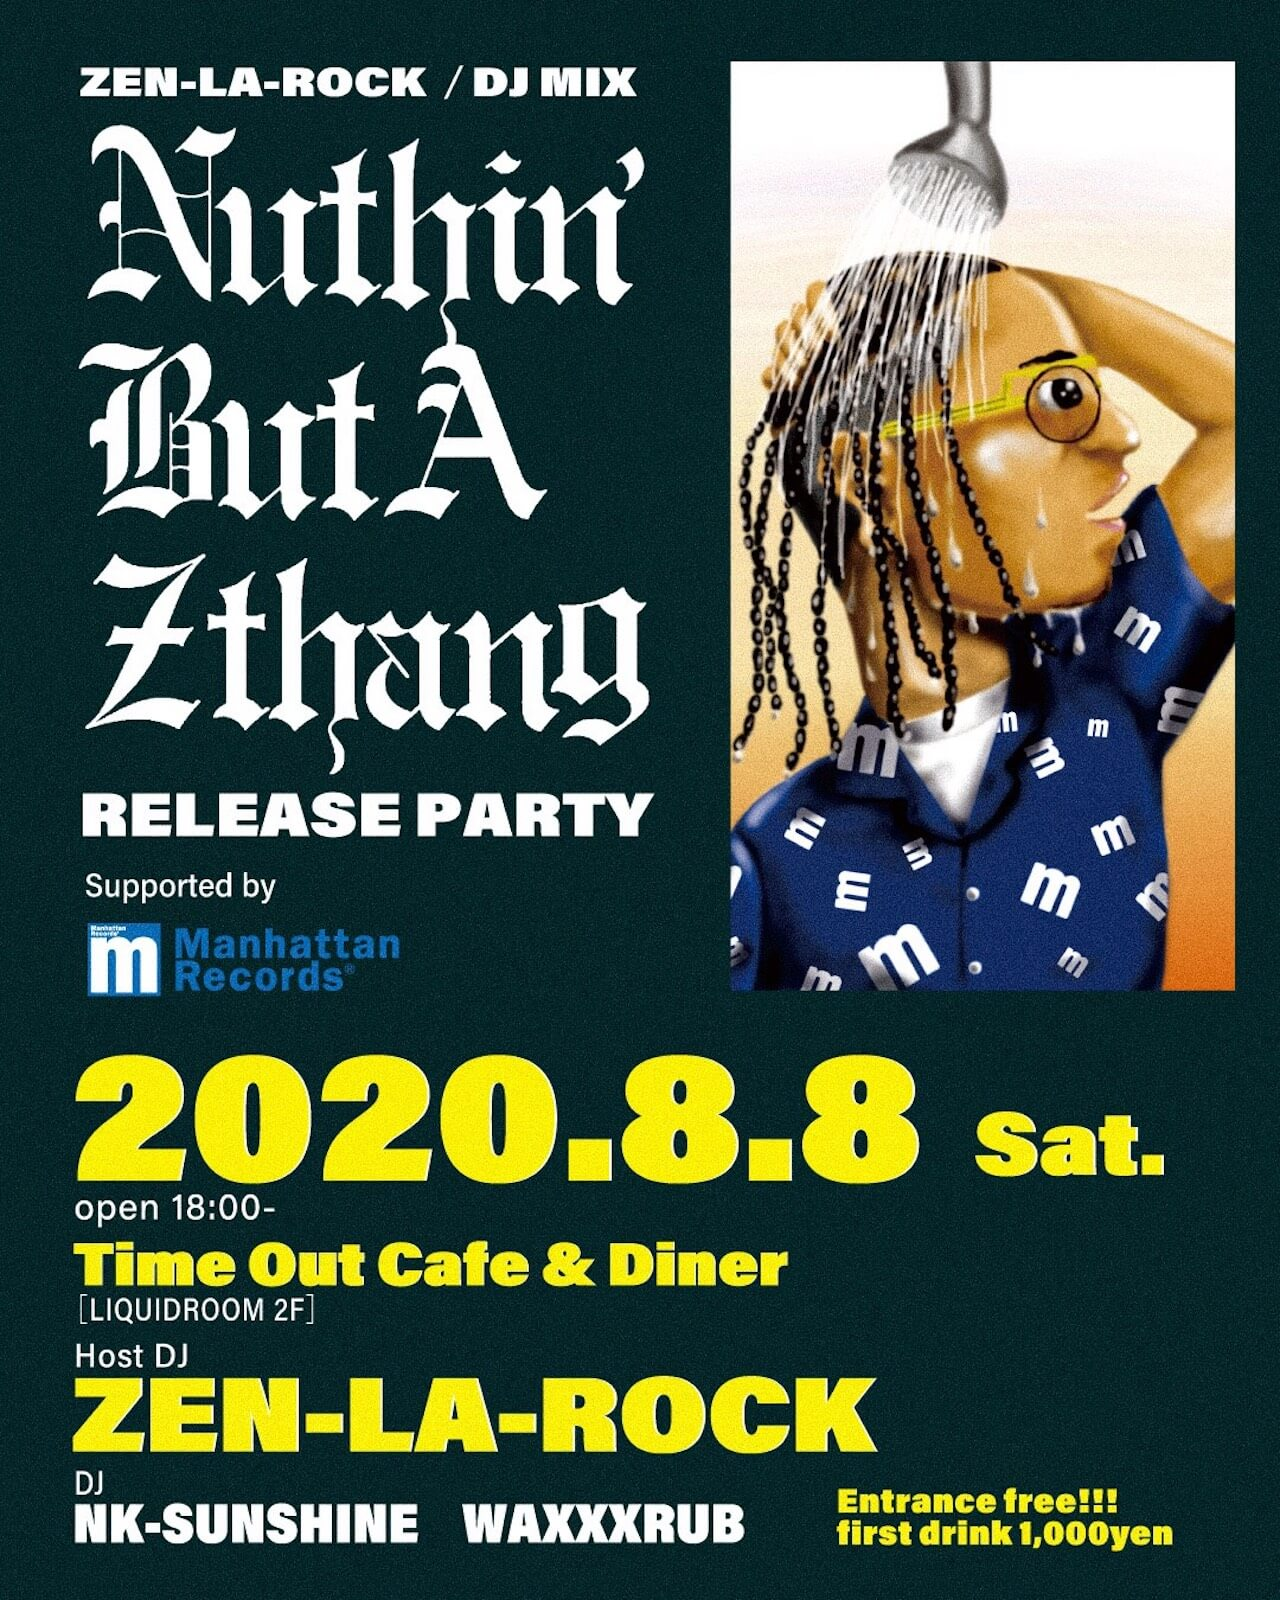 ZEN-LA-ROCKの最新MIX『Nuthin' But A Z Thang』キープ・ソーシャル・ディスタンスなリリース・パーティがTime Out Cafe & Dinerにて開催 music200806-zen-la-rock